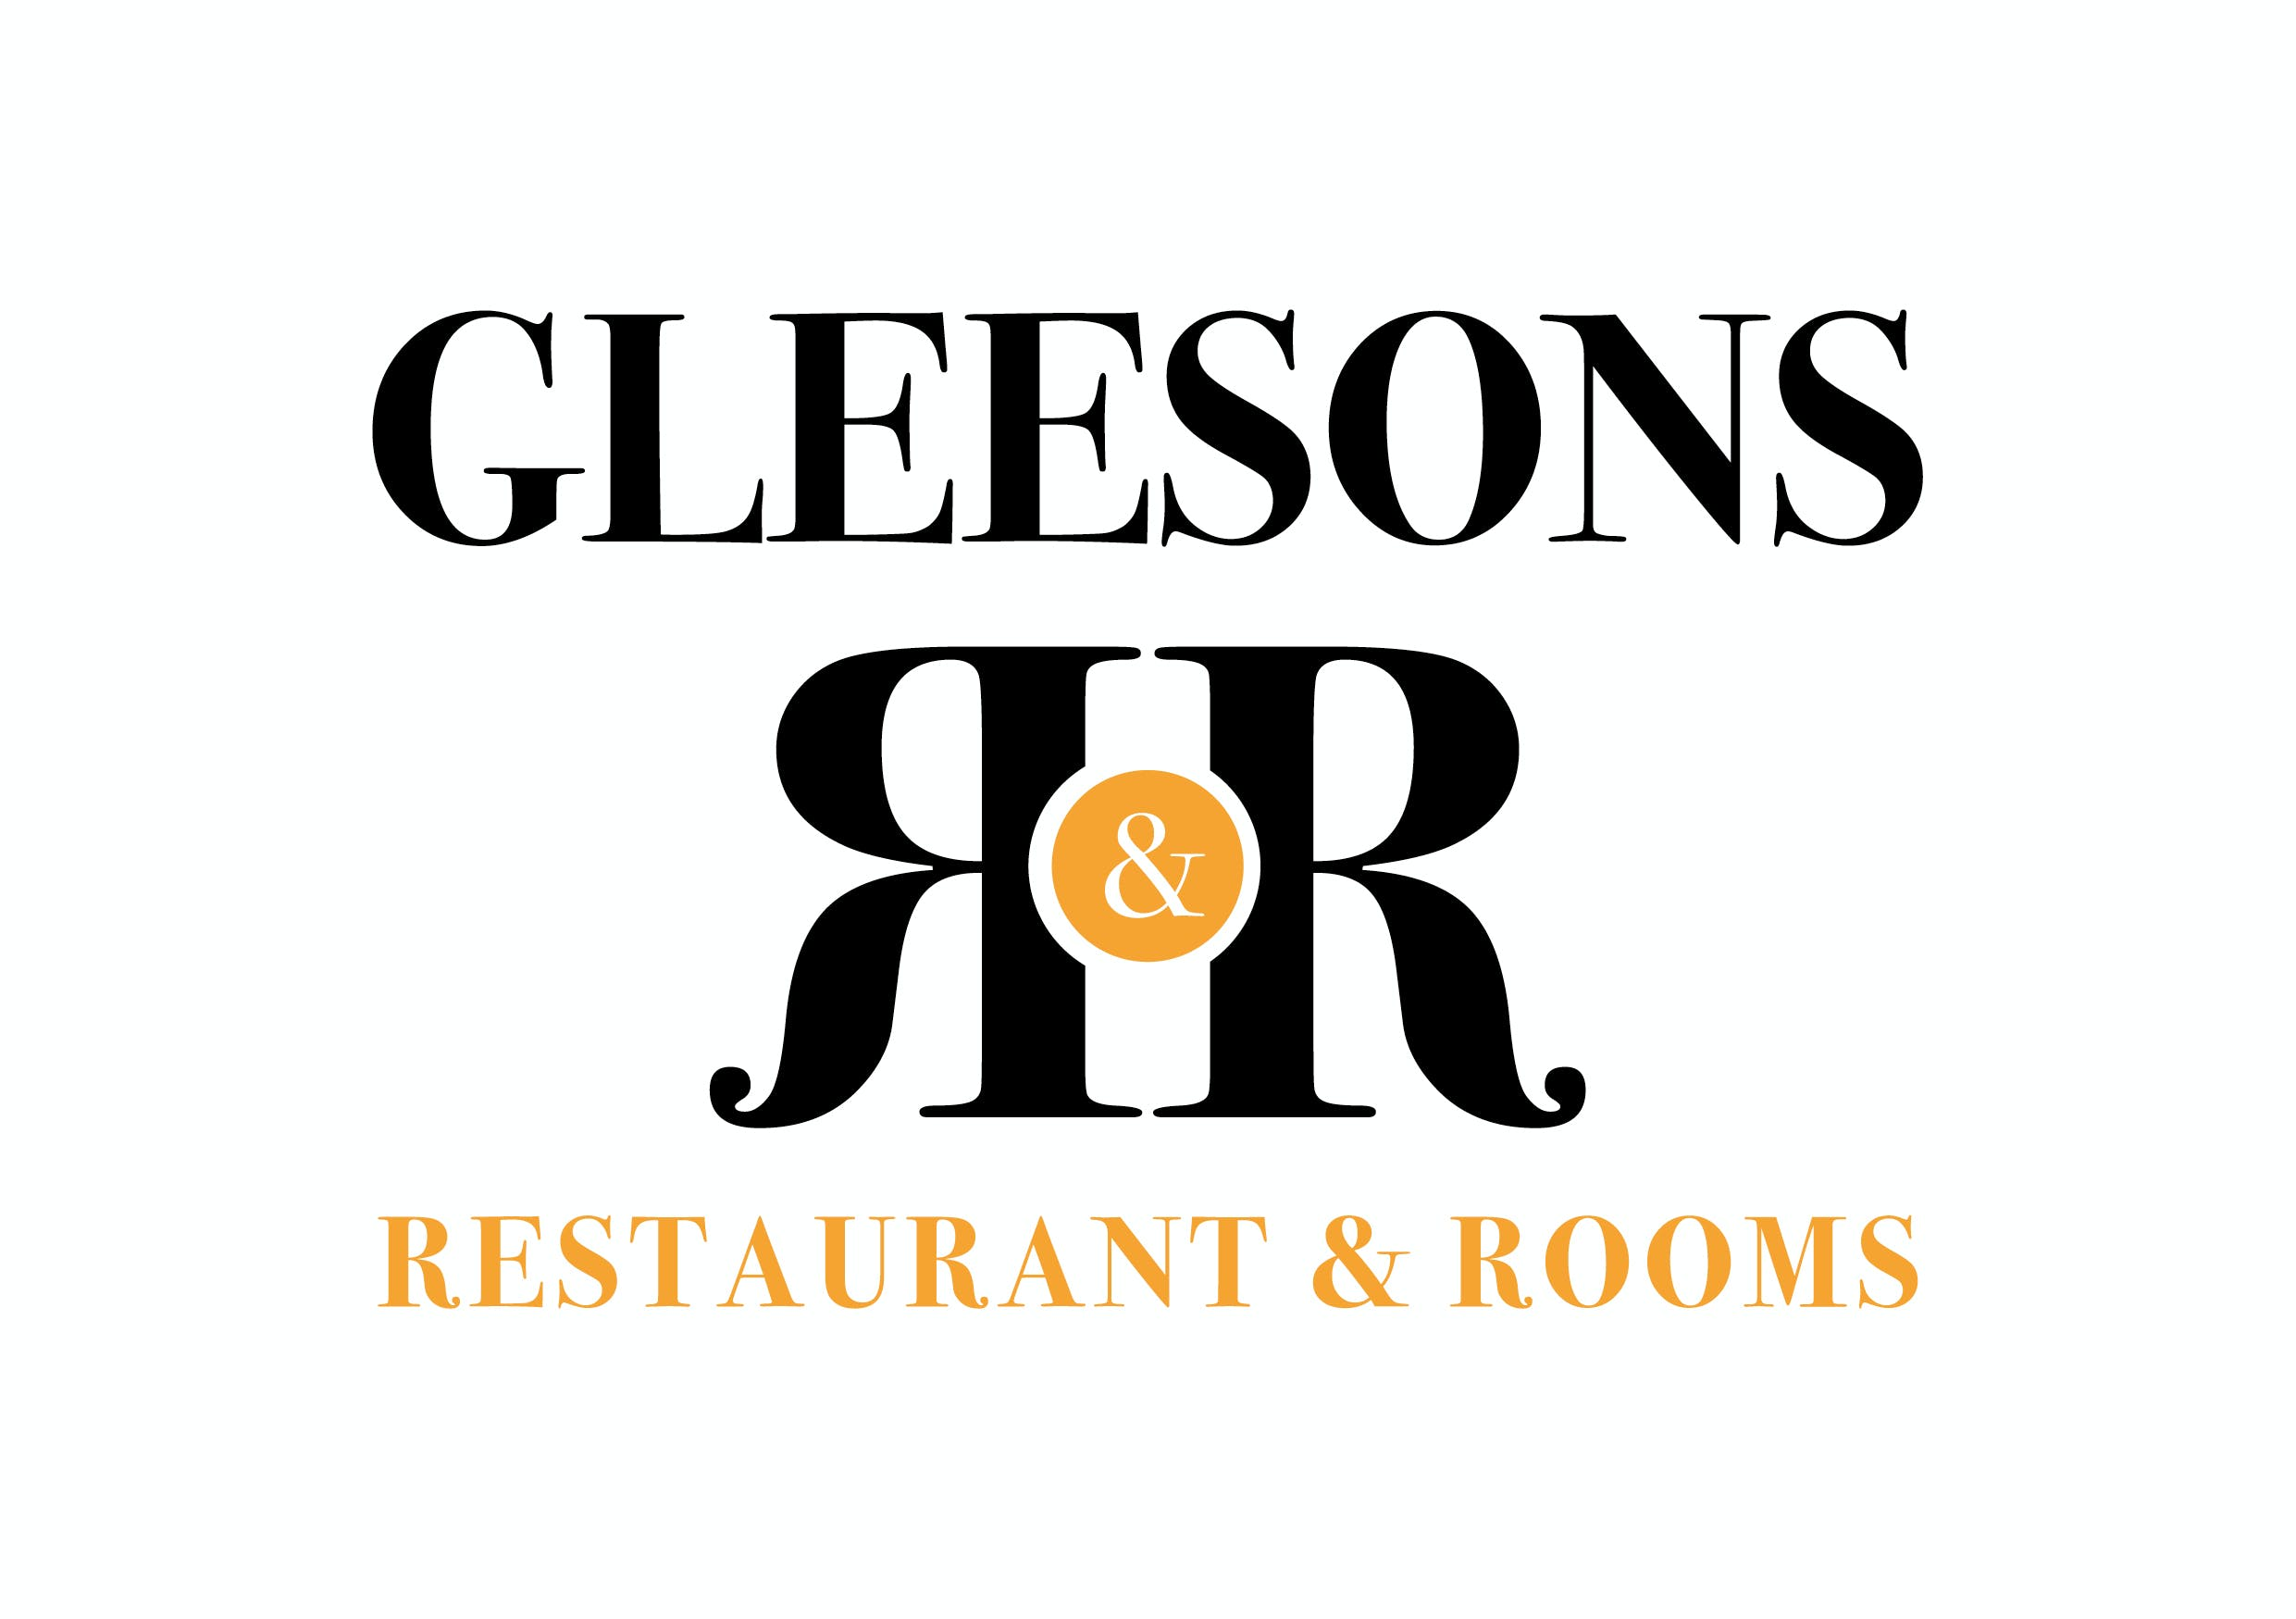 Gleesons Restaurant & Rooms